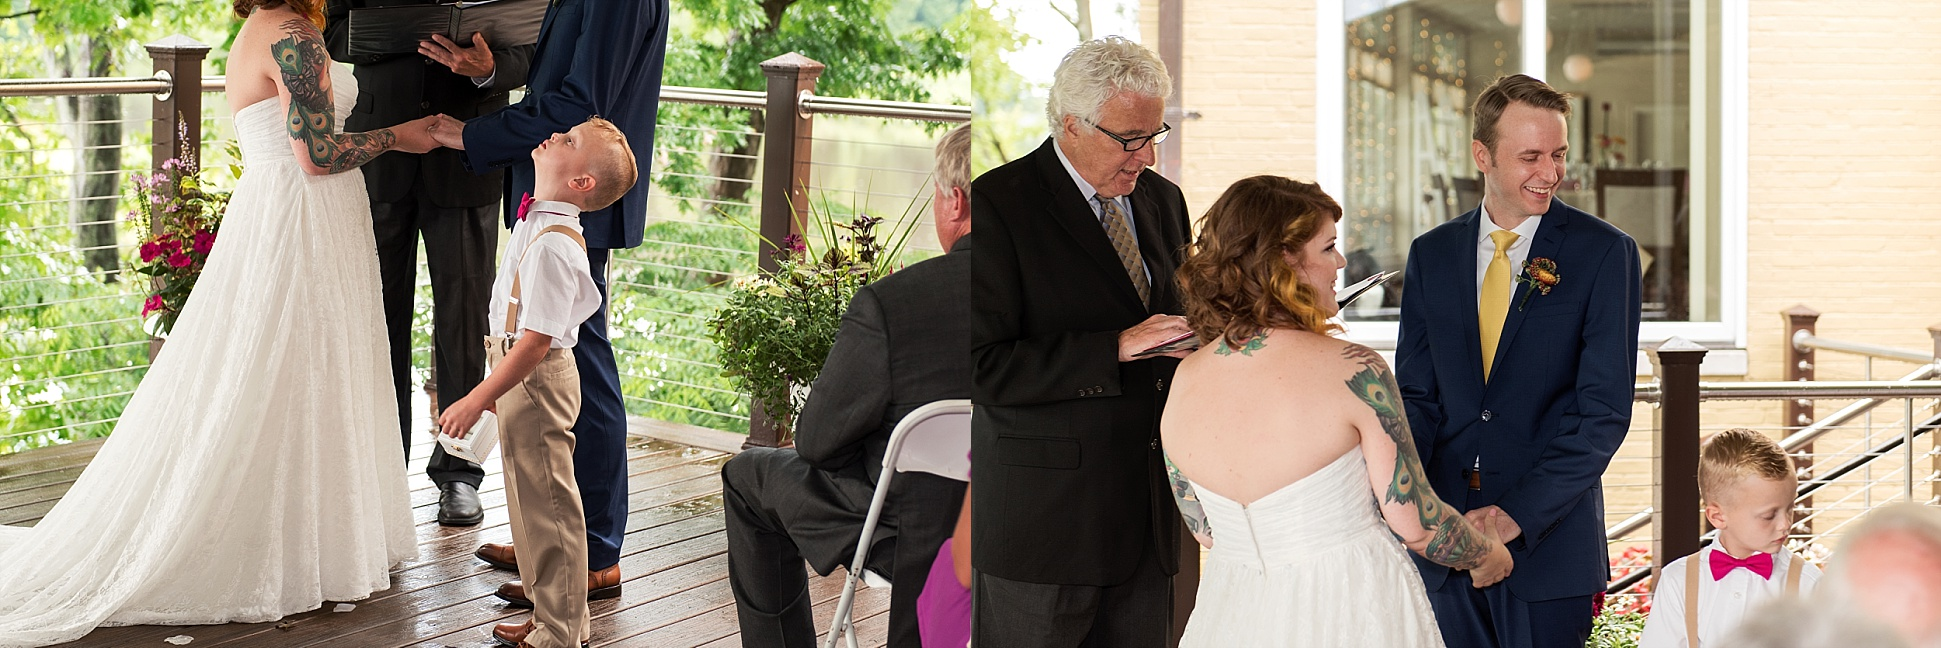 intimate wedding ceremony photography ct